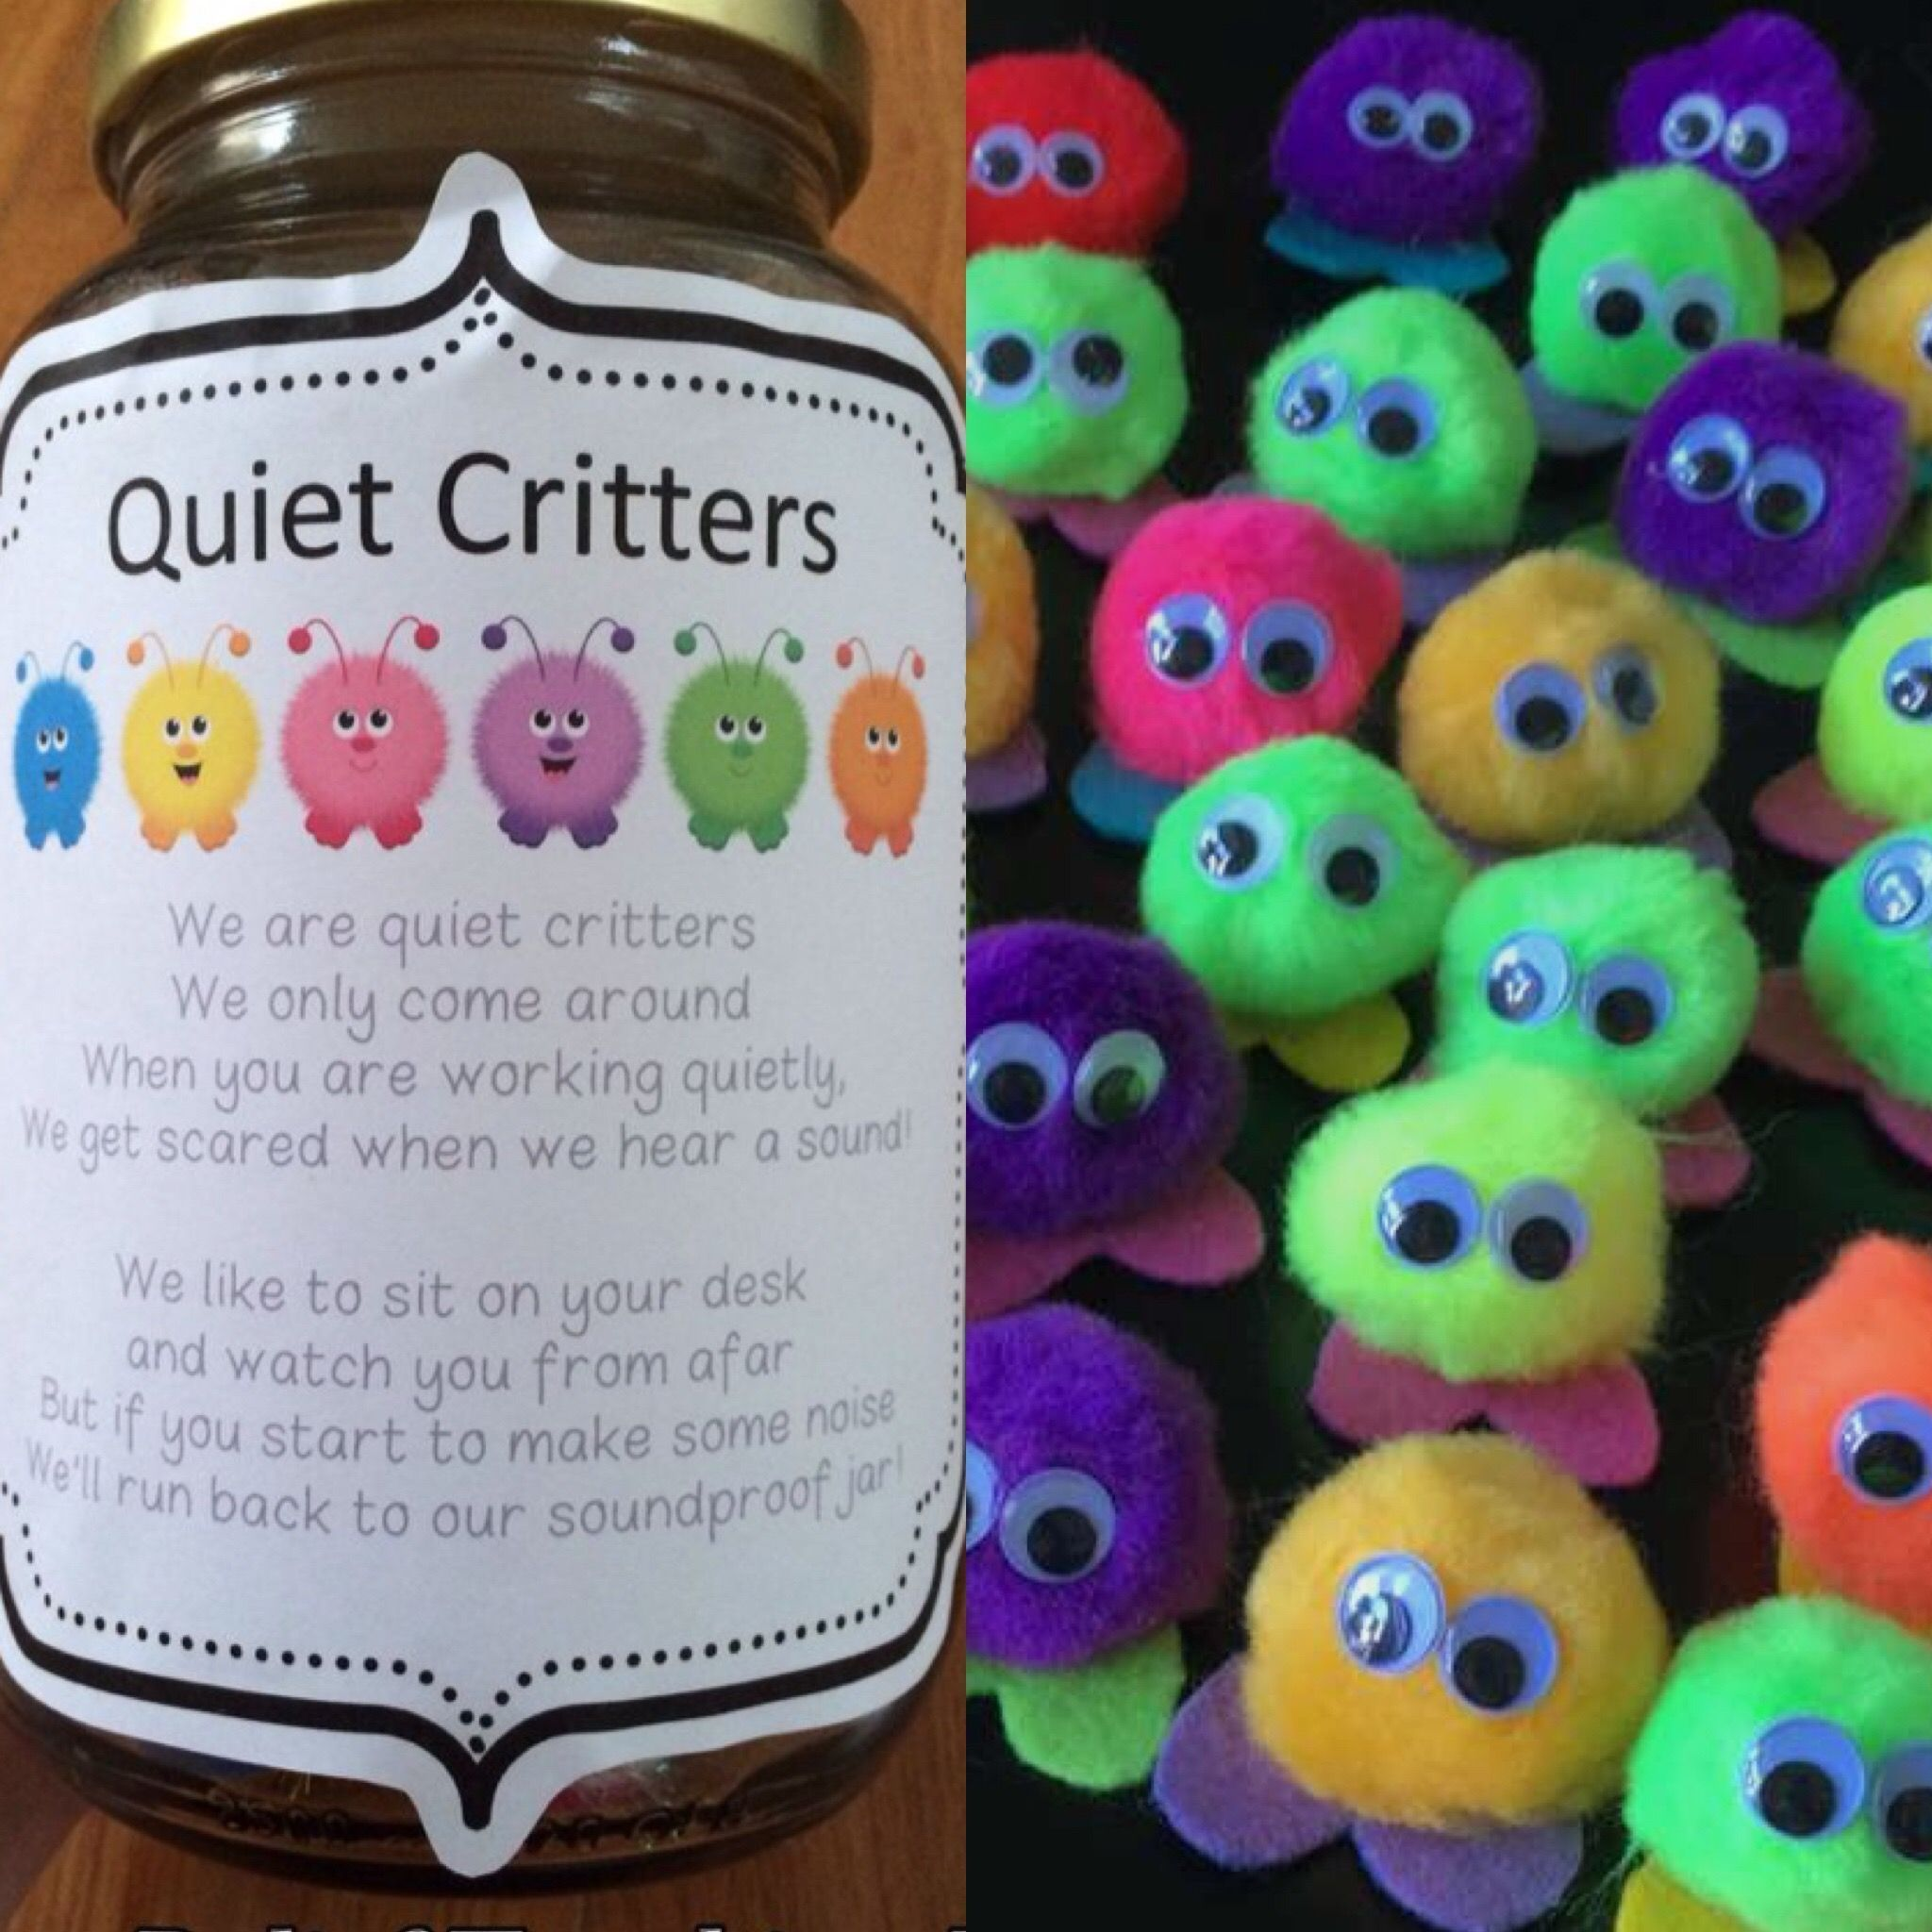 I love using these quiet critters in my classroom! They are great classroom management tools to use for quiet writers! #quietcritters I love using these quiet critters in my classroom! They are great classroom management tools to use for quiet writers! #quietcritters I love using these quiet critters in my classroom! They are great classroom management tools to use for quiet writers! #quietcritters I love using these quiet critters in my classroom! They are great classroom management tools to us #quietcritters